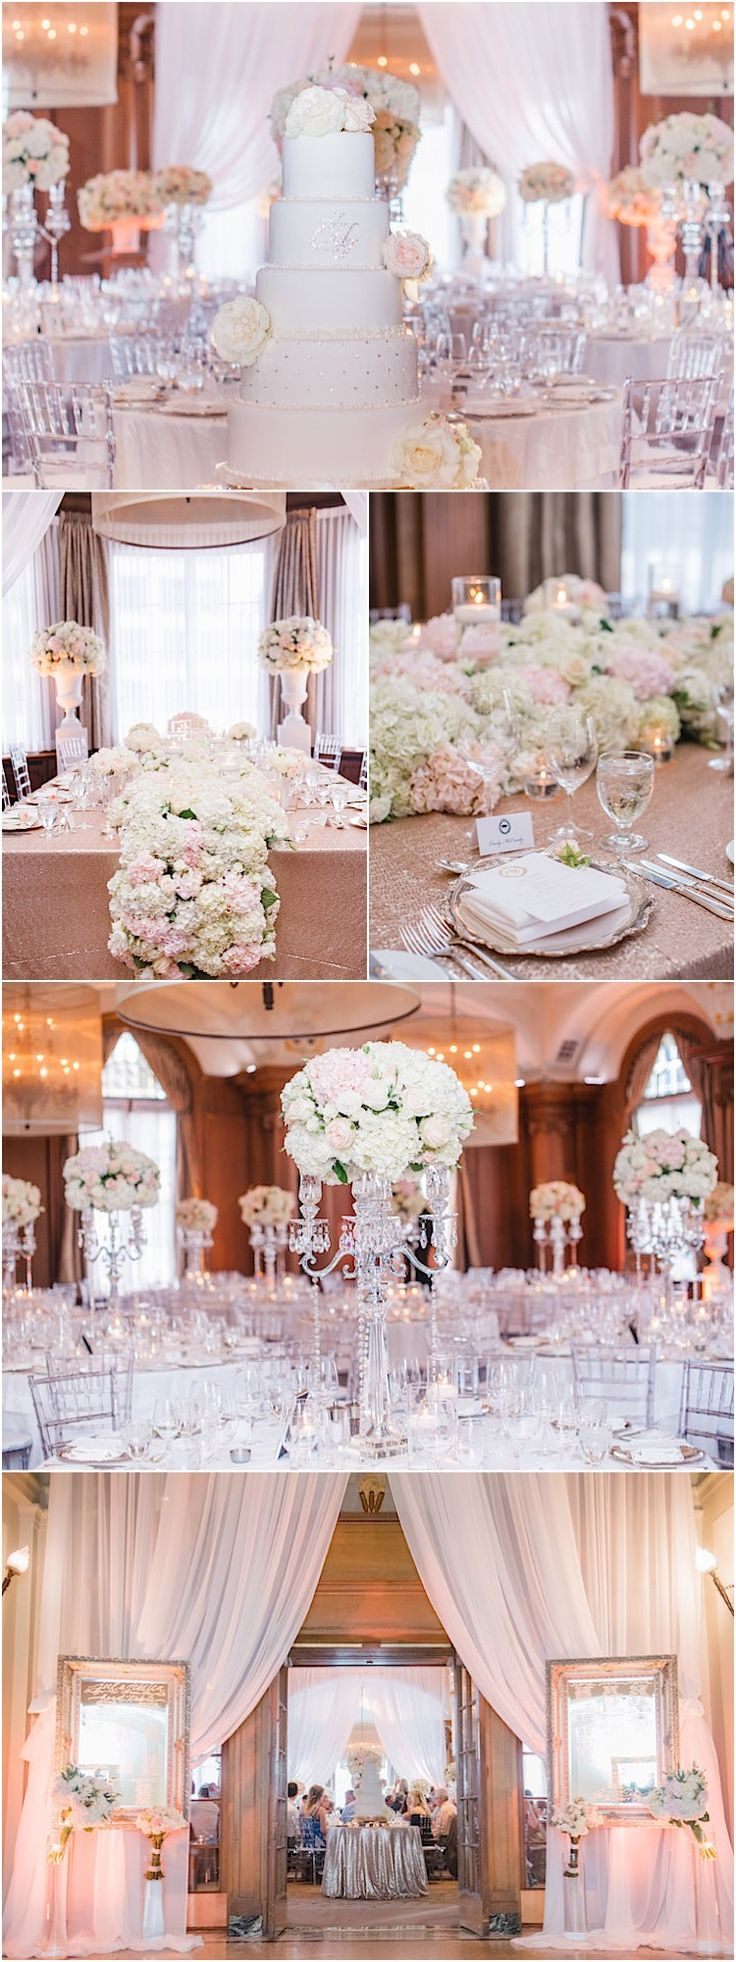 Glamorous wedding reception idea; Featured: Blush Wedding Photography http://ecameraeffects.com/sharper-images/